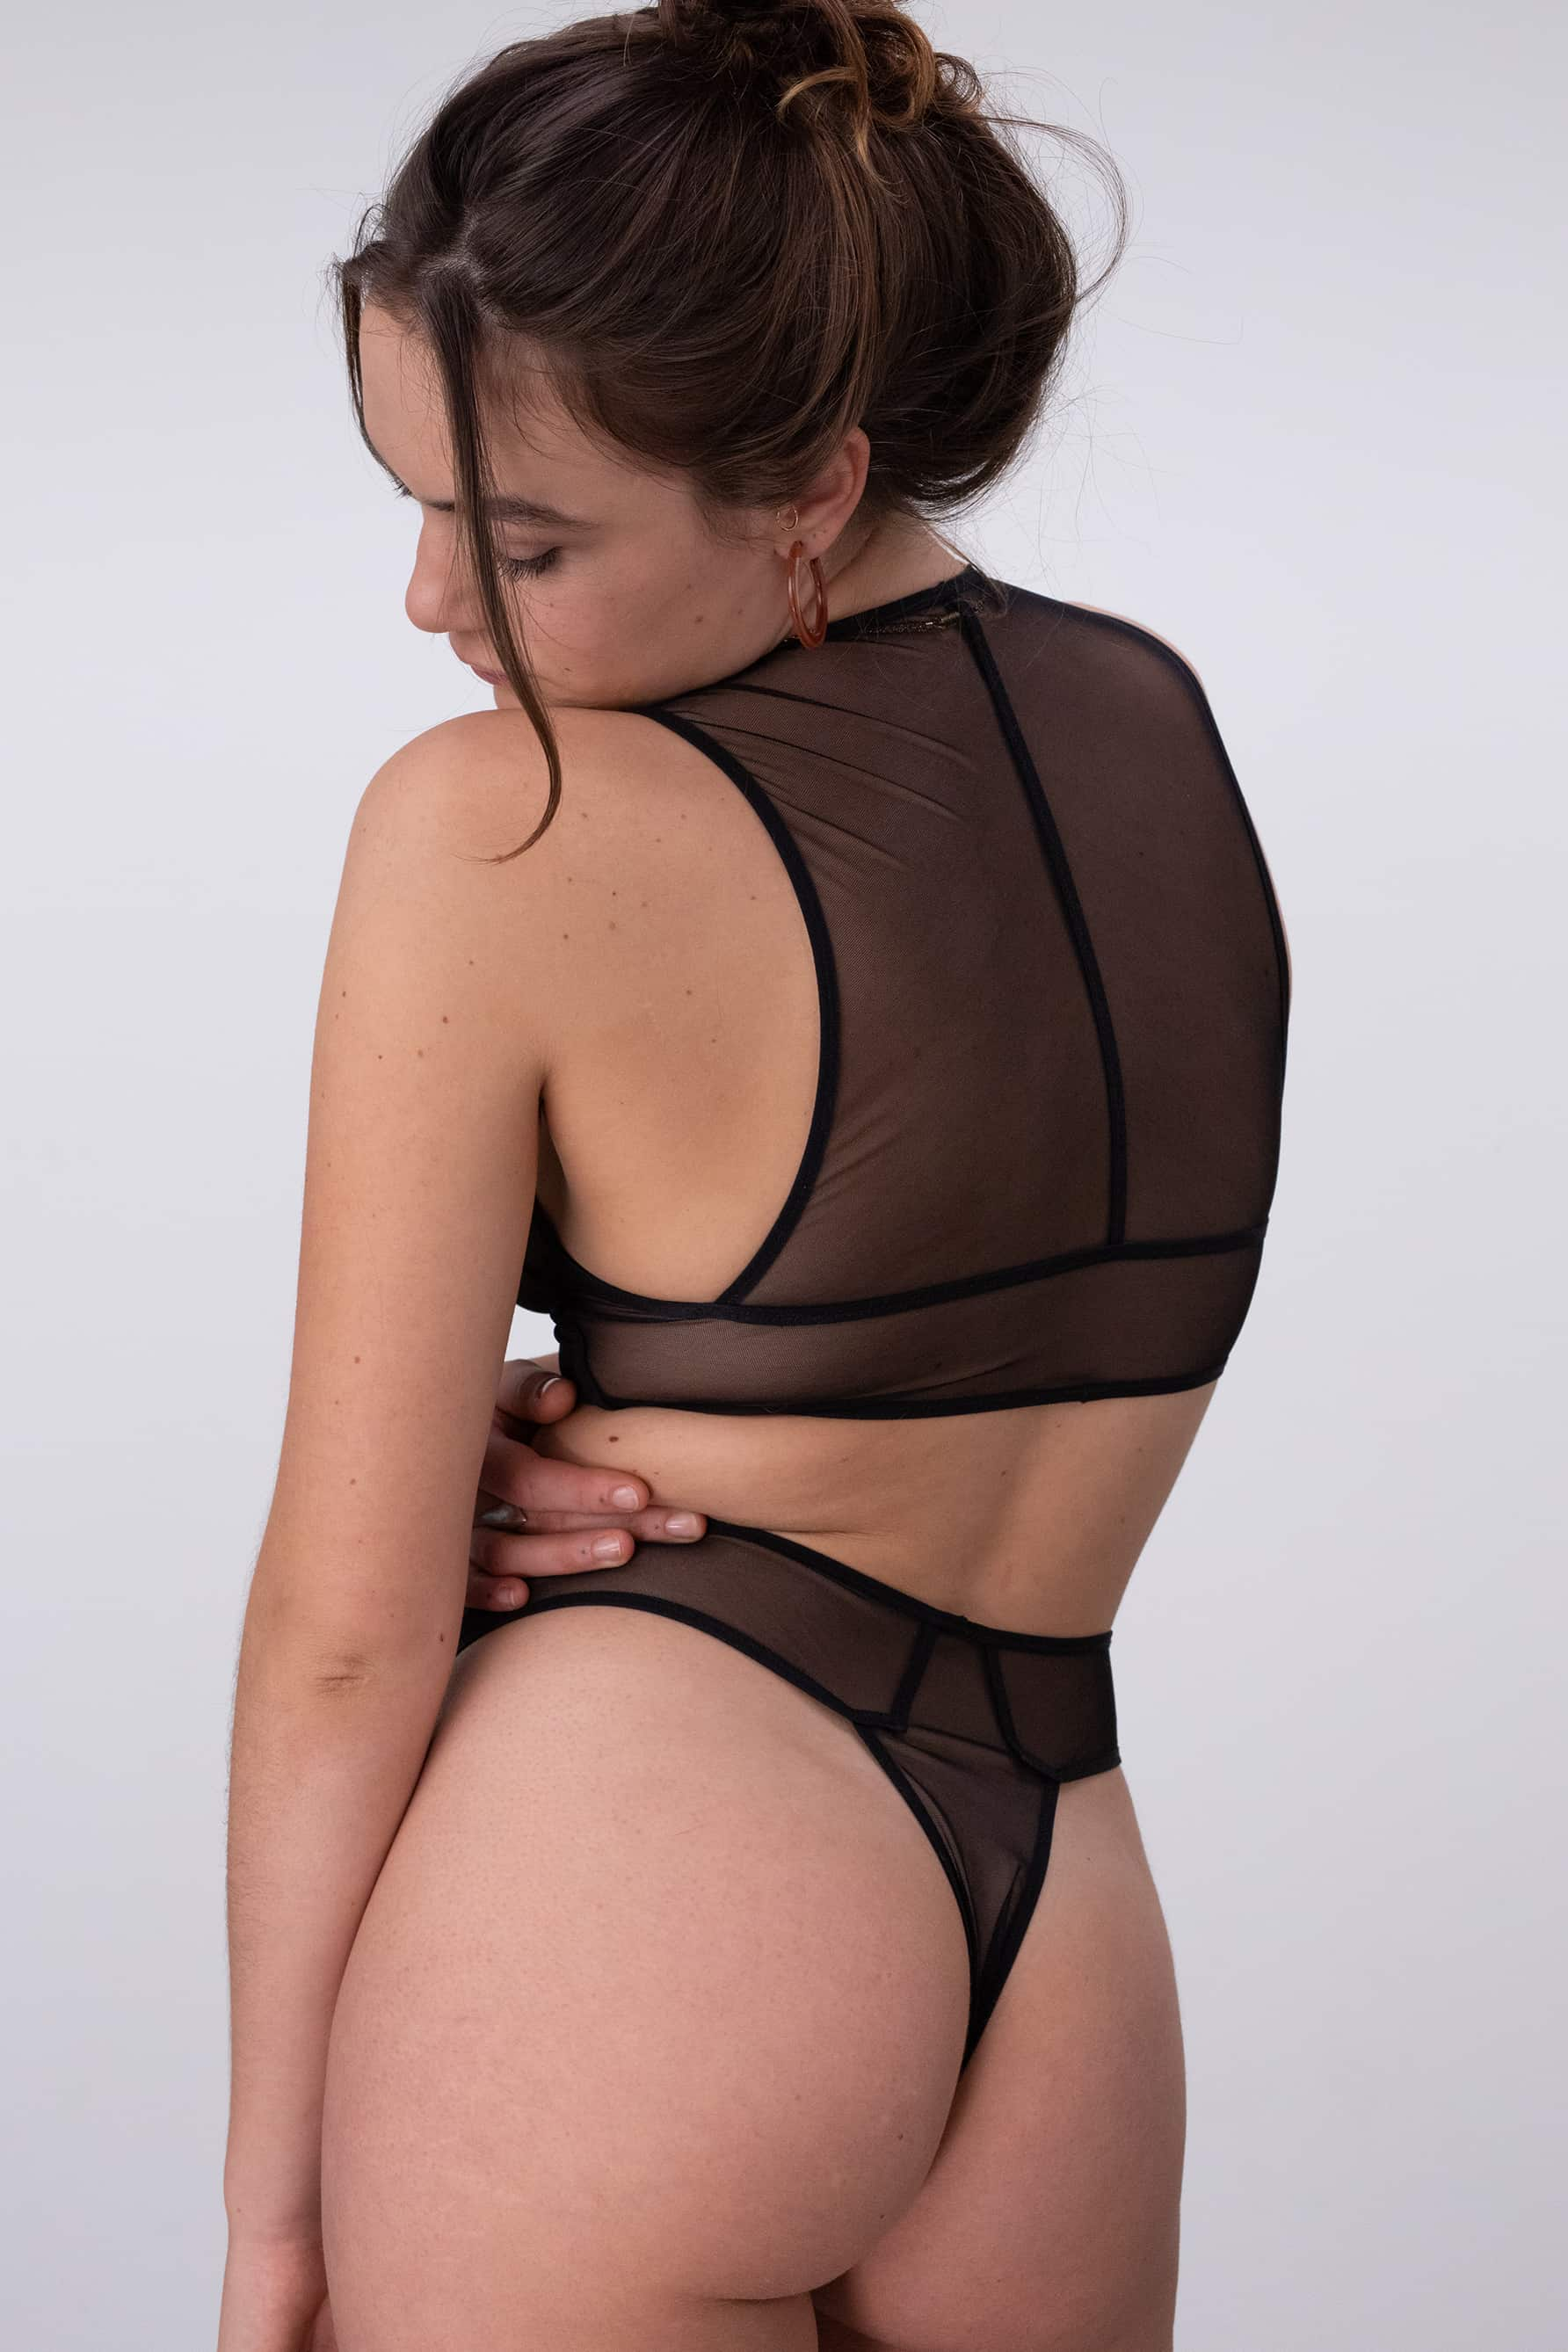 Pierrot sheer black high waist thong by La Fille d'O, back/side view, shown on model